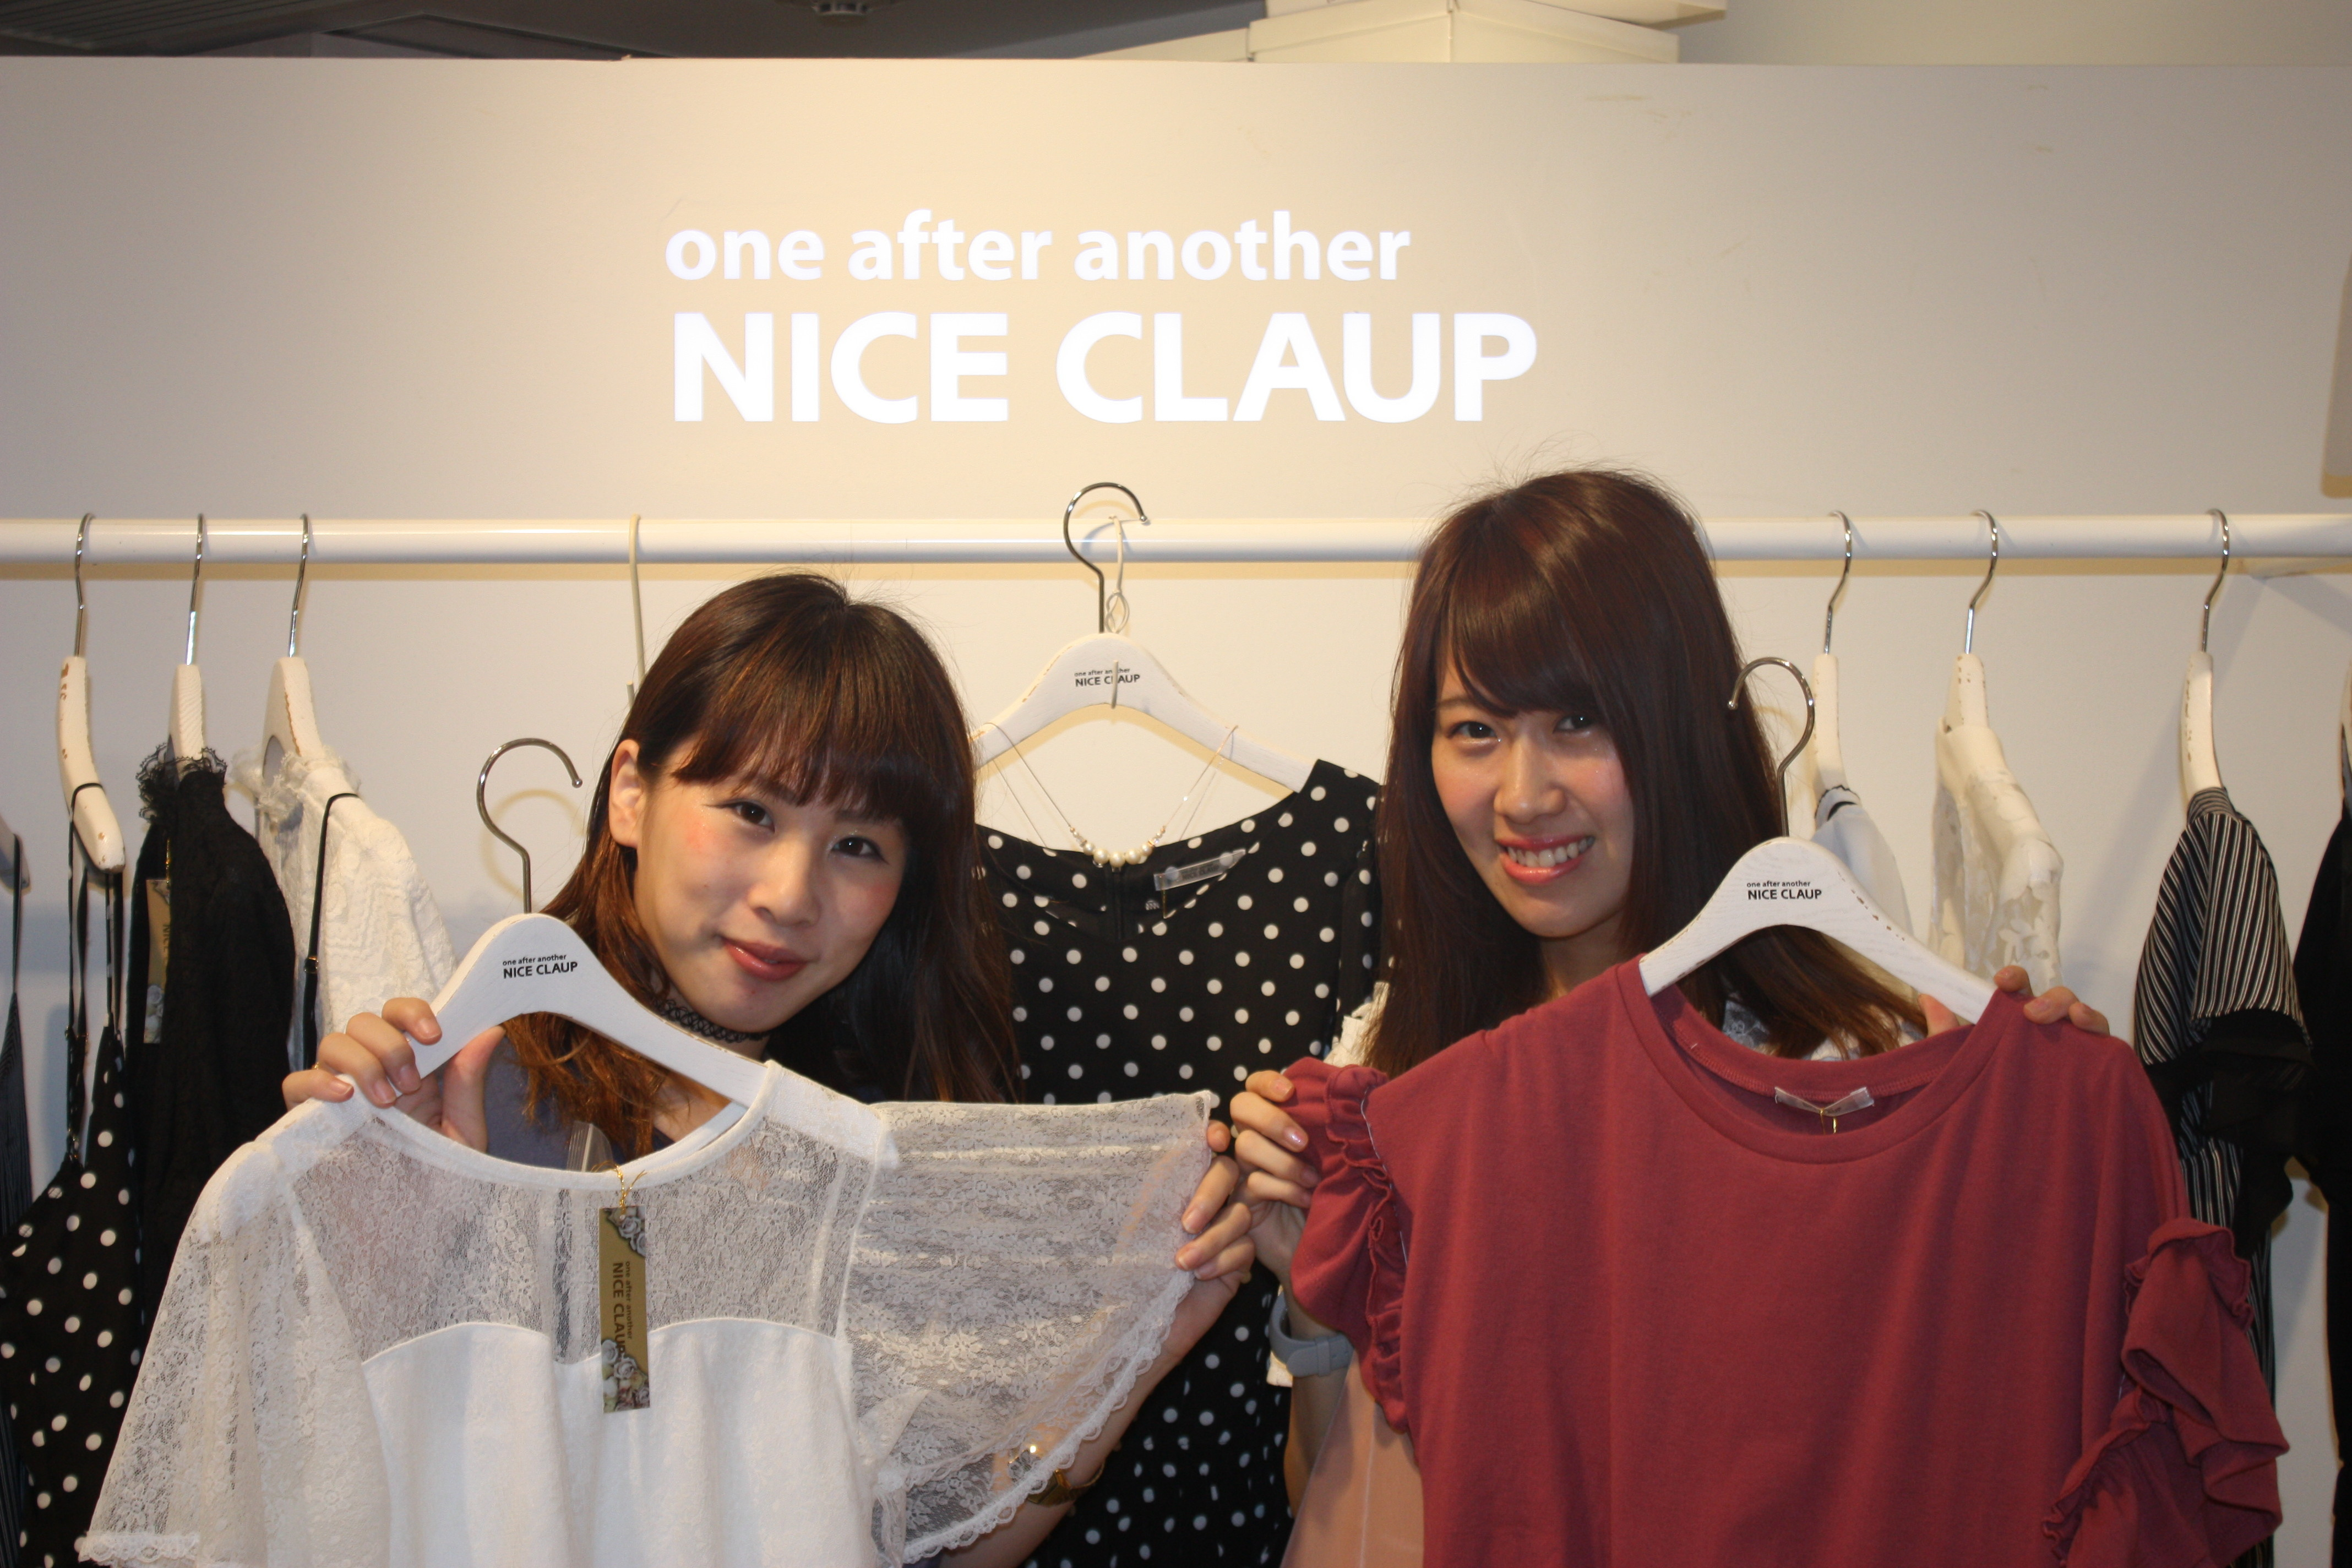 one after another NICE CLAUP(ワンアフターアナザーナイスクラップ) 名古屋モゾワンダーシティー店のアルバイト情報